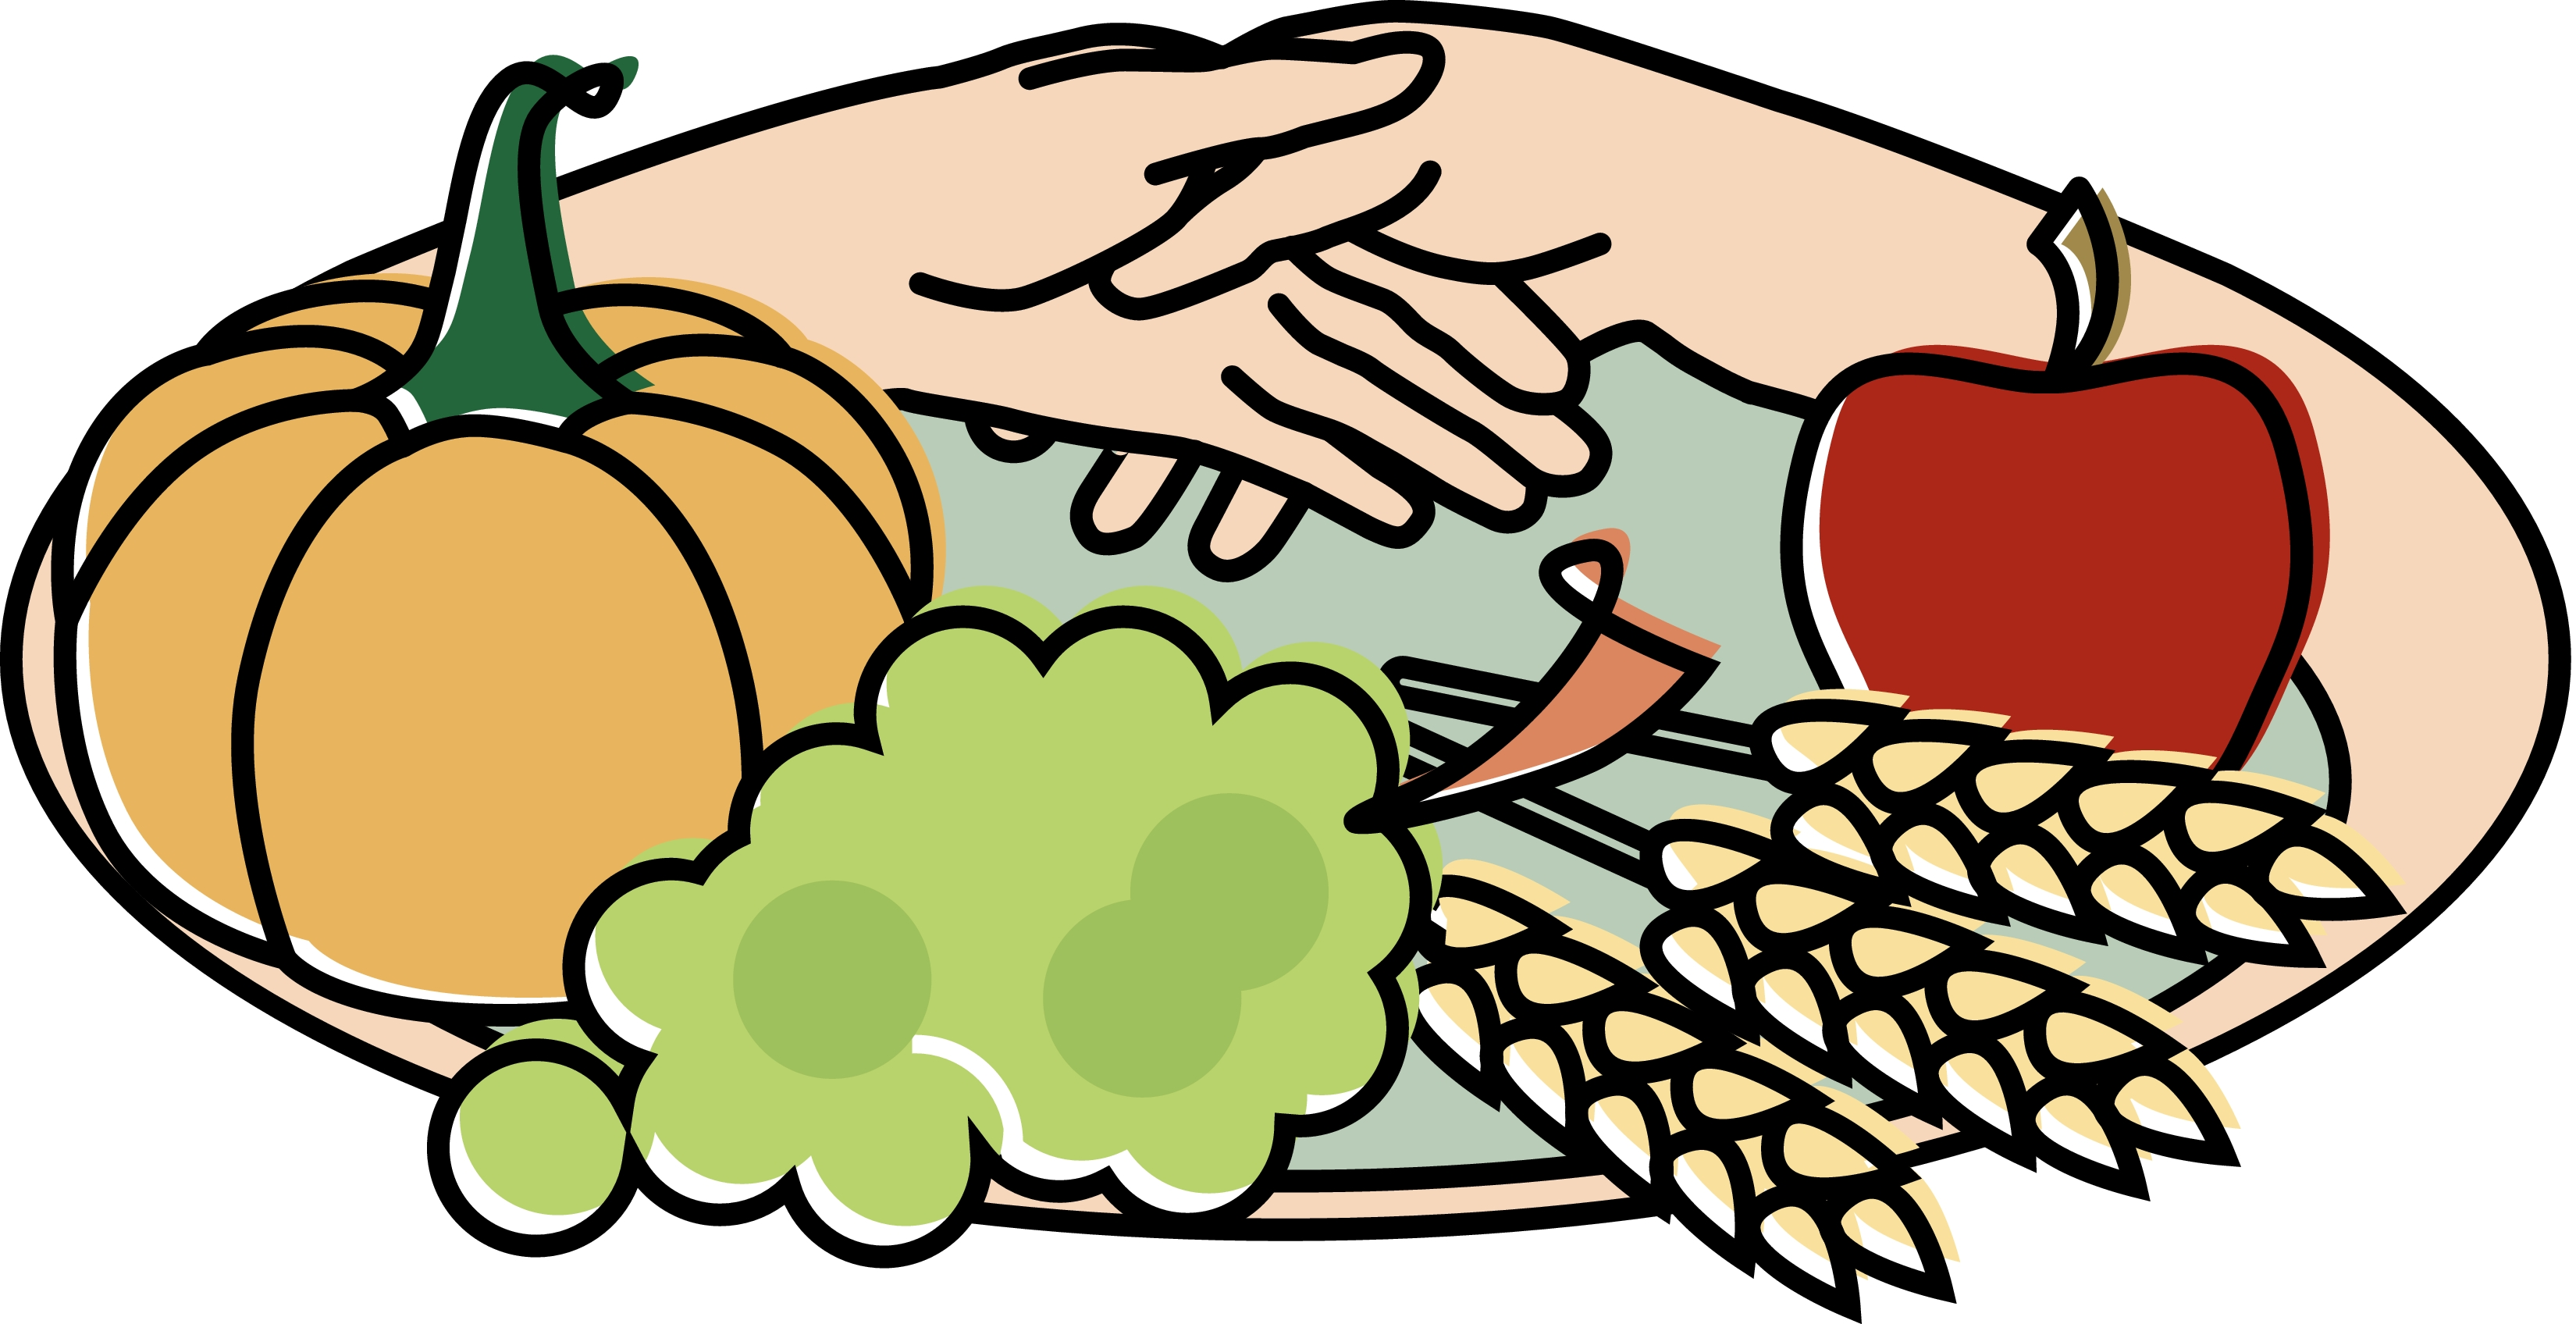 Harvest clipart church Clipart clipart Clipart Free Dinner